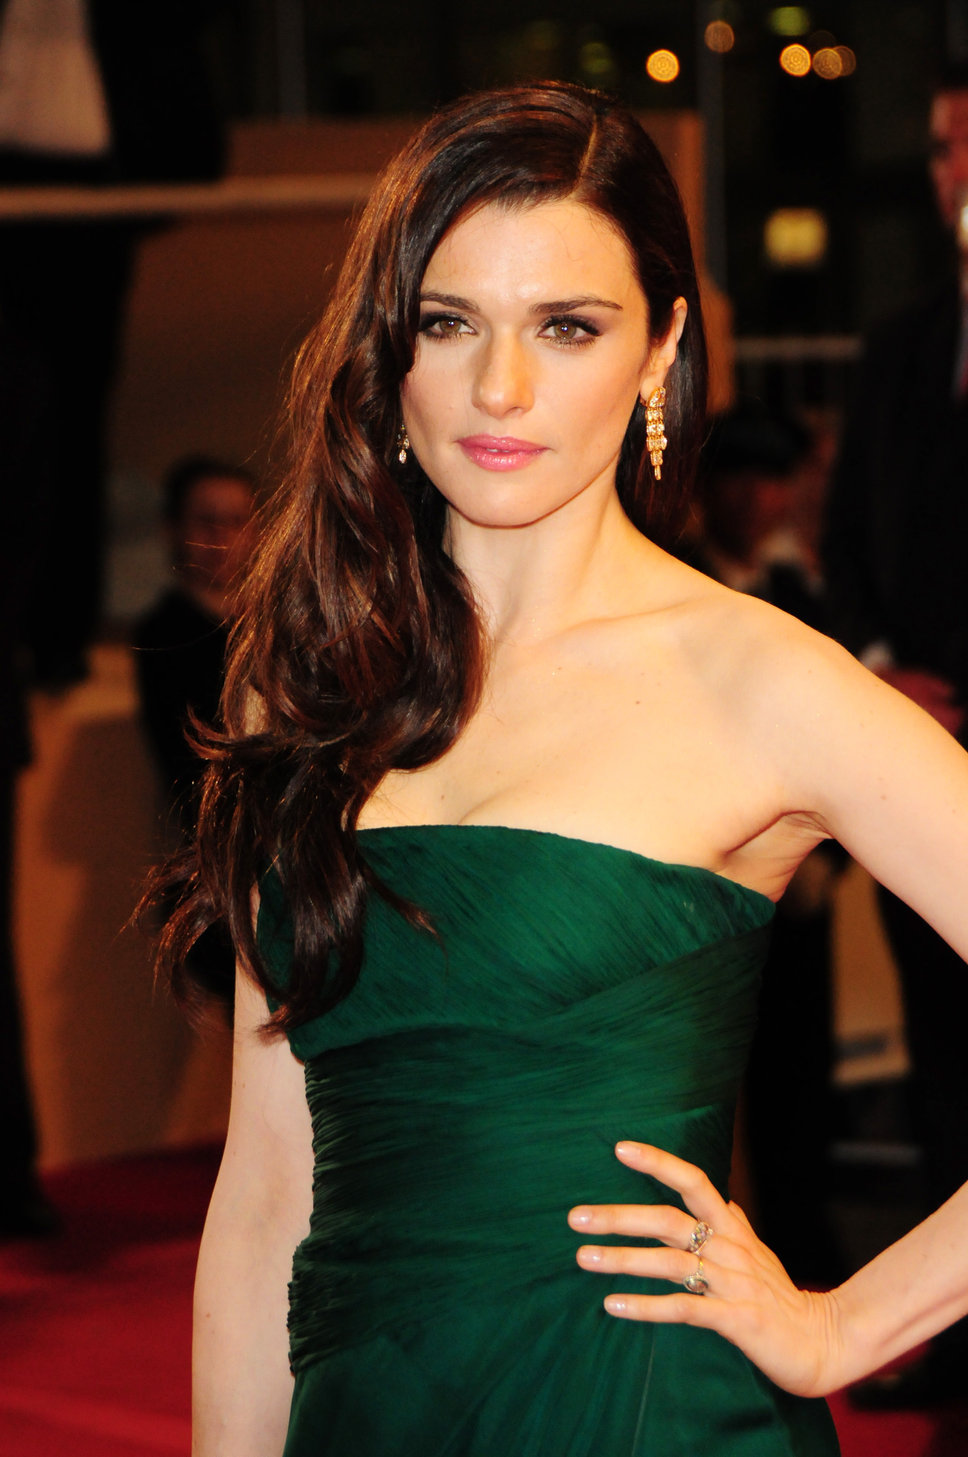 dynamic winter rachel weisz in green